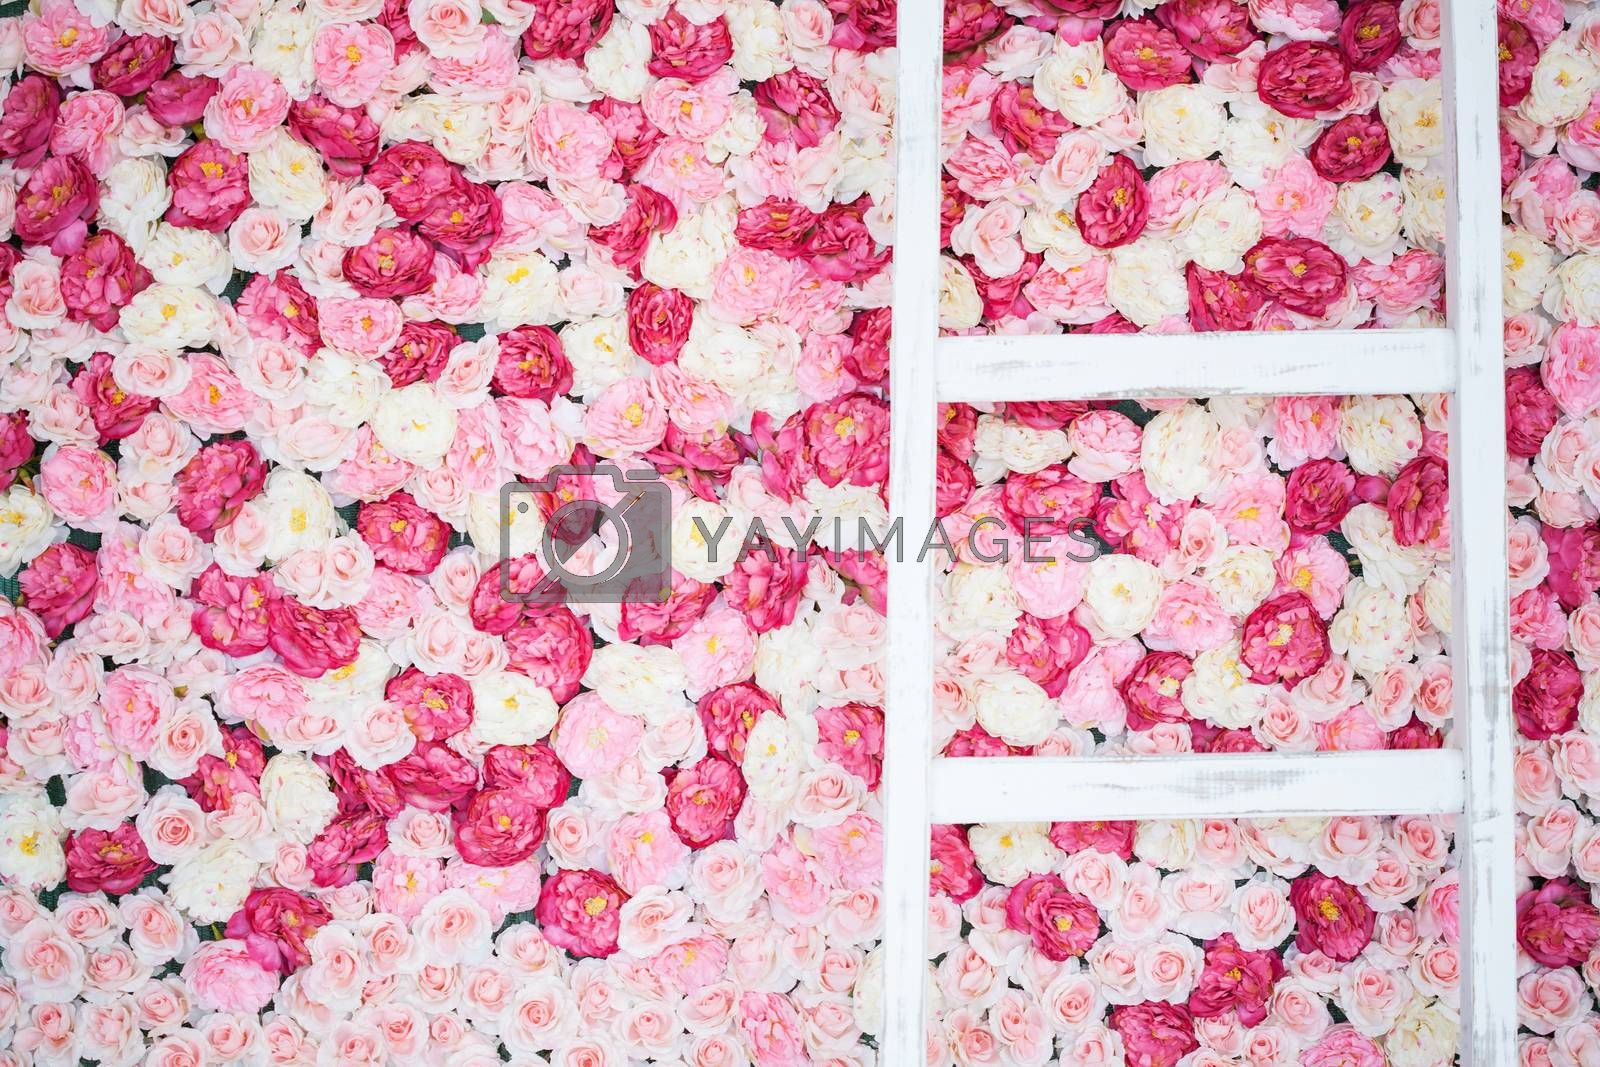 background full of white and pink roses by dolgachov